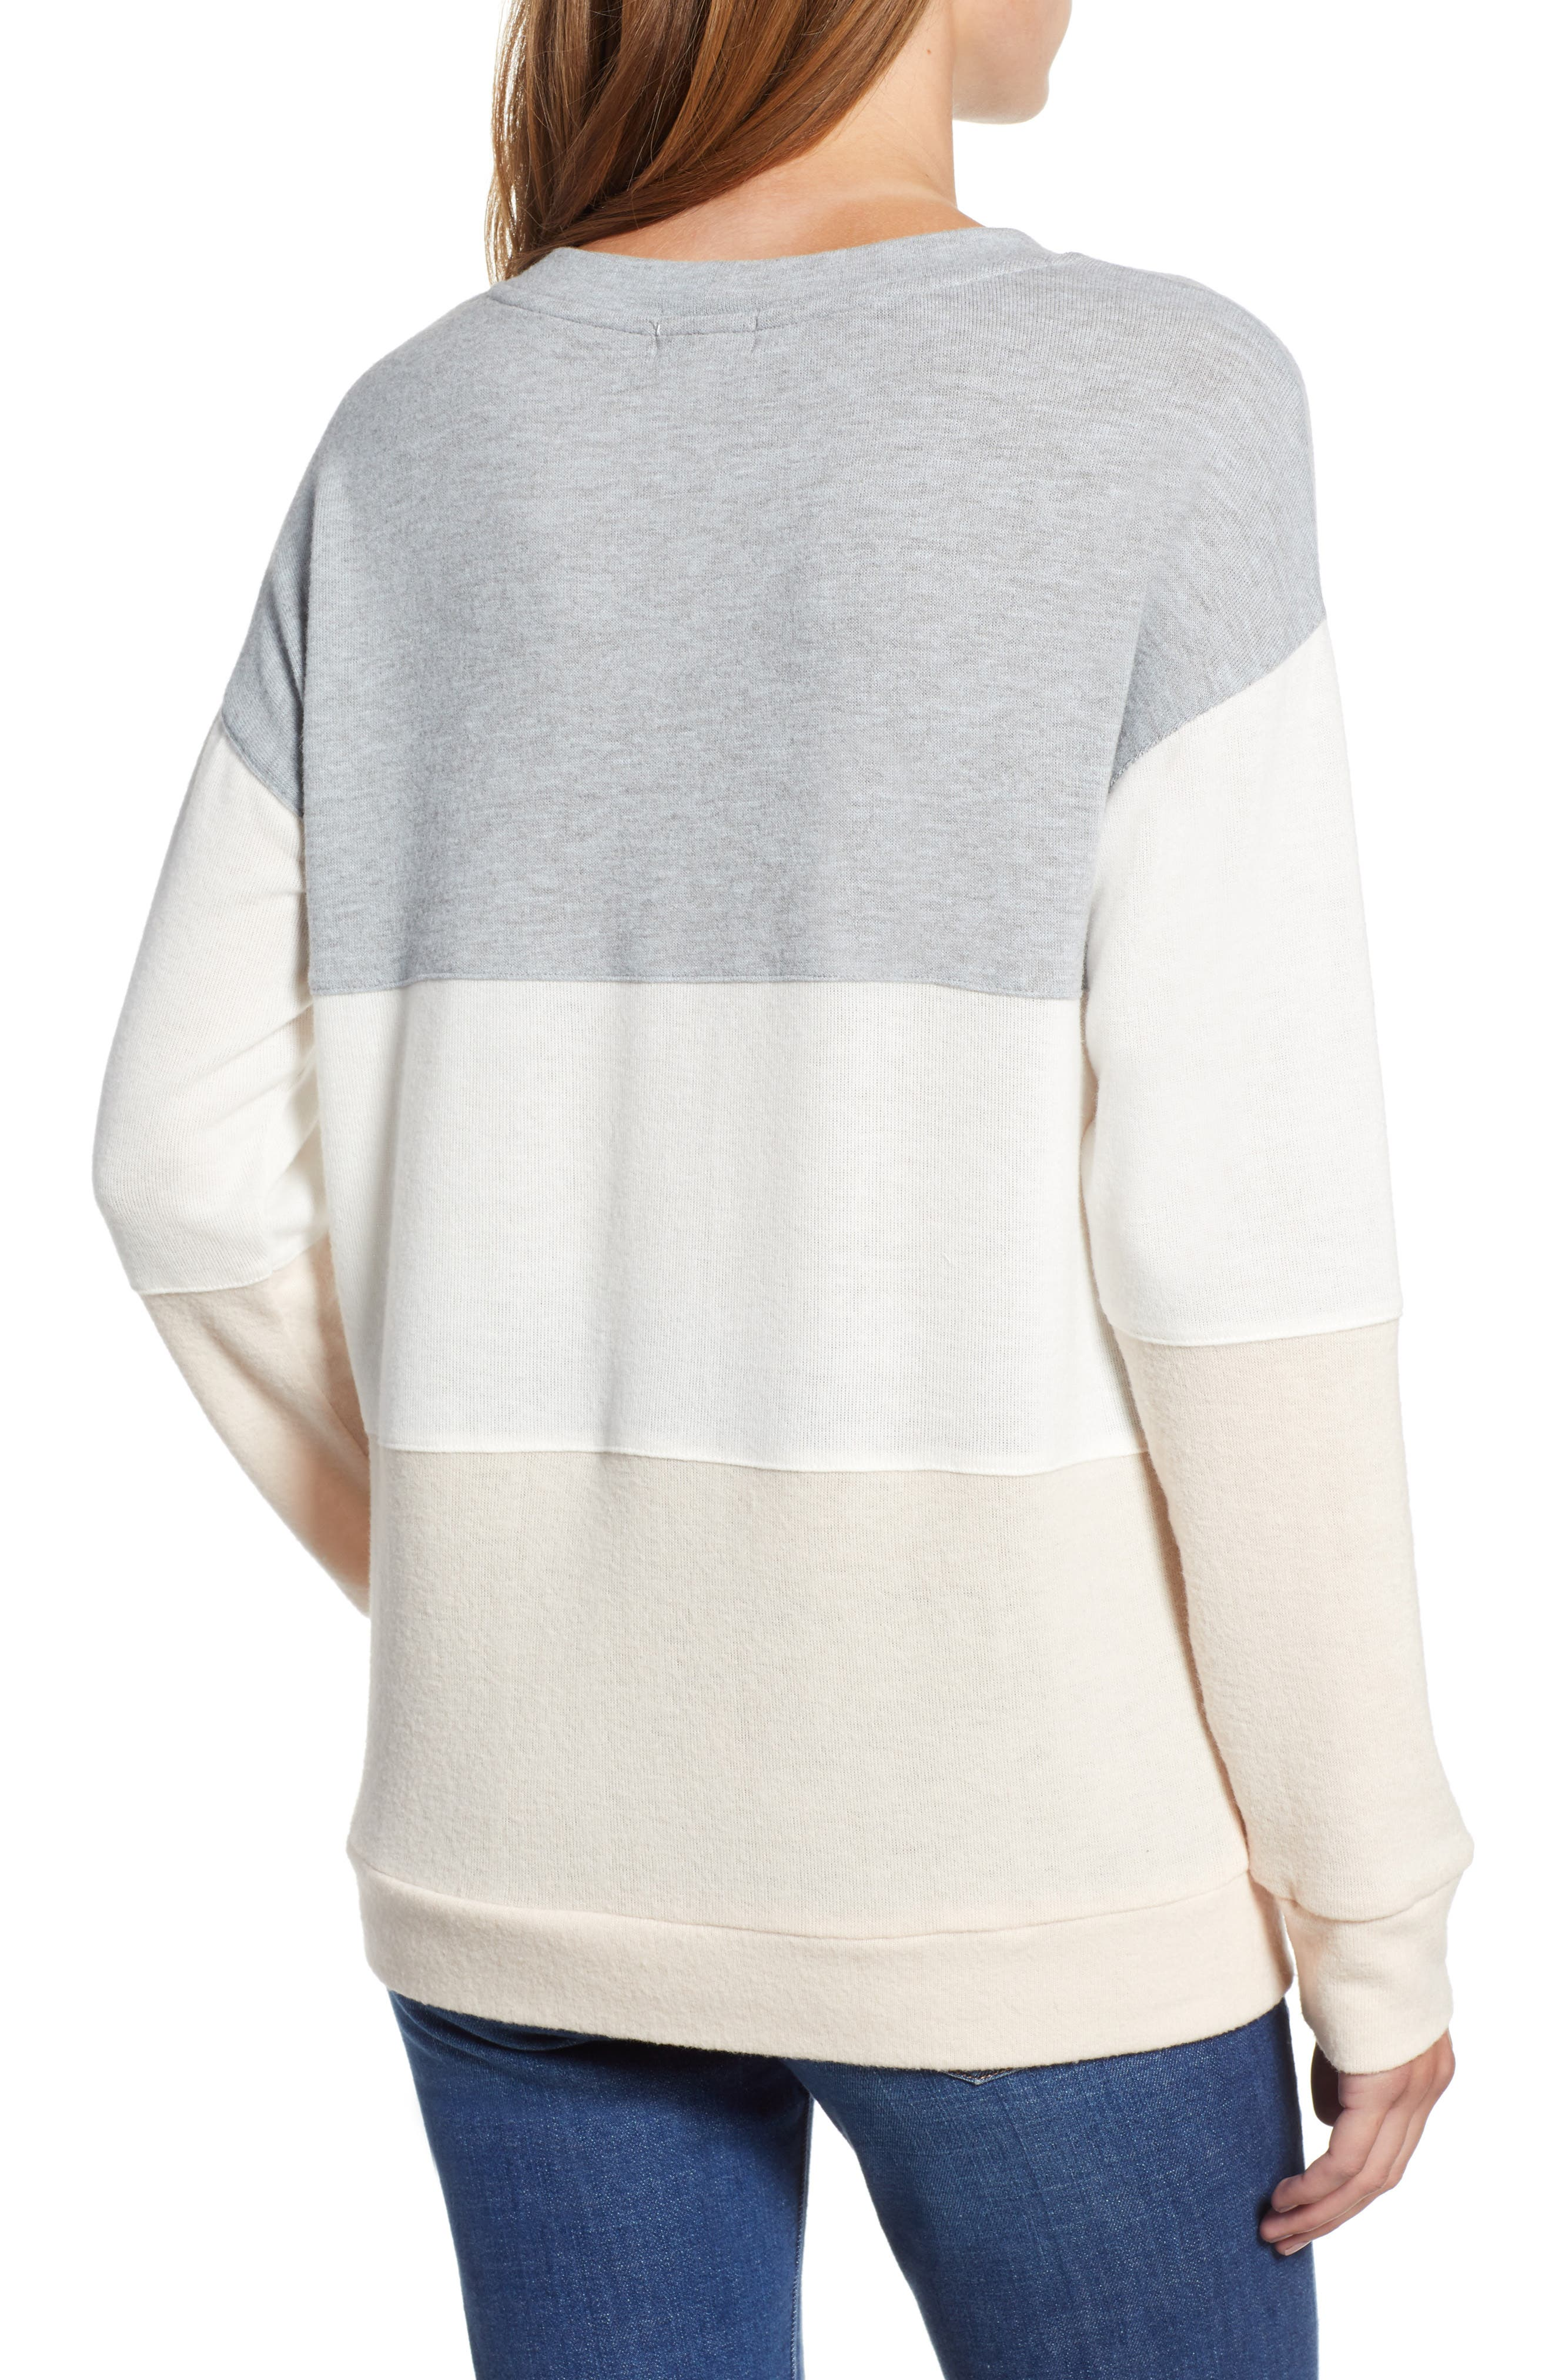 Colorblock Sweatshirt,                             Alternate thumbnail 2, color,                             GREY/ WHITE/ PINK